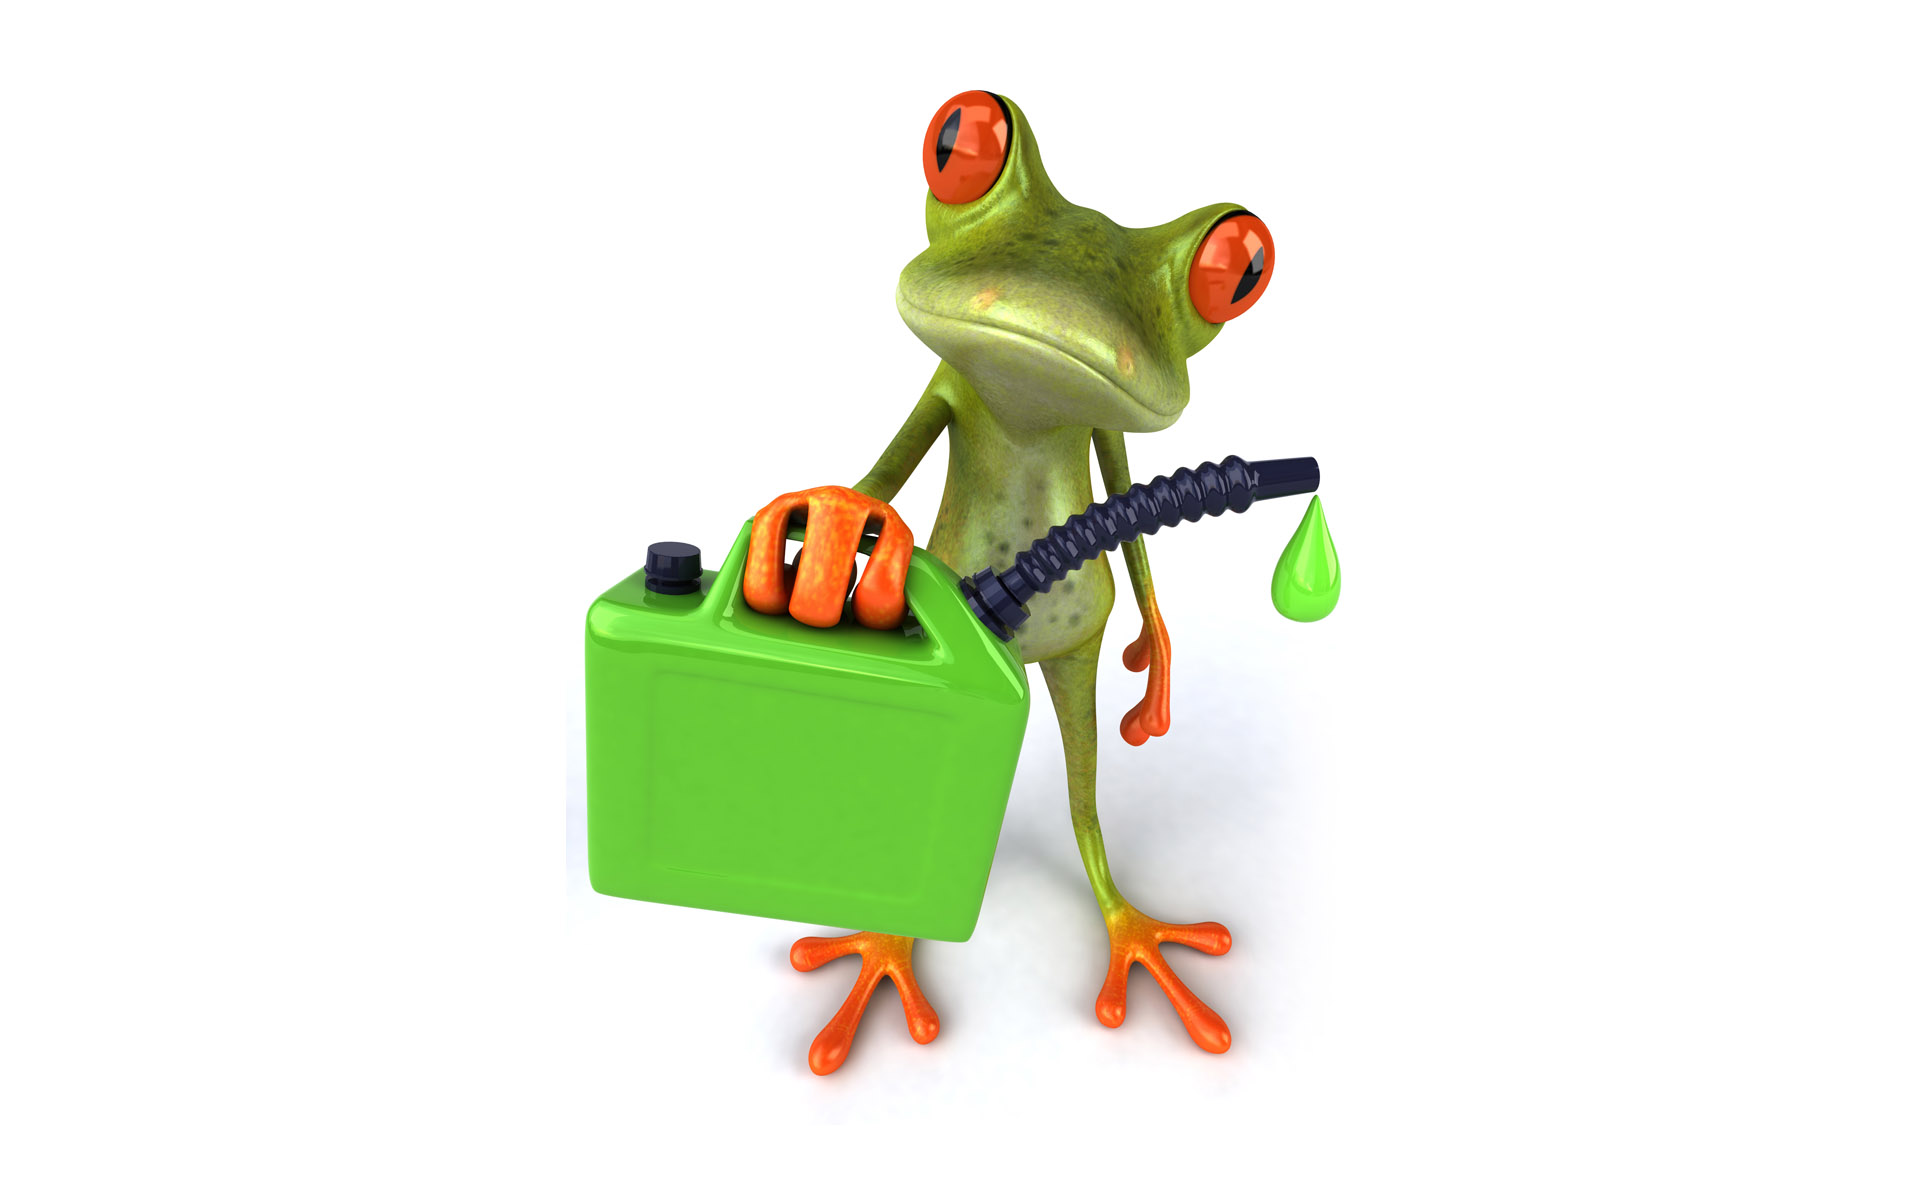 frog 3d wallpaper for desktop is a great wallpaper for your computer 1920x1200